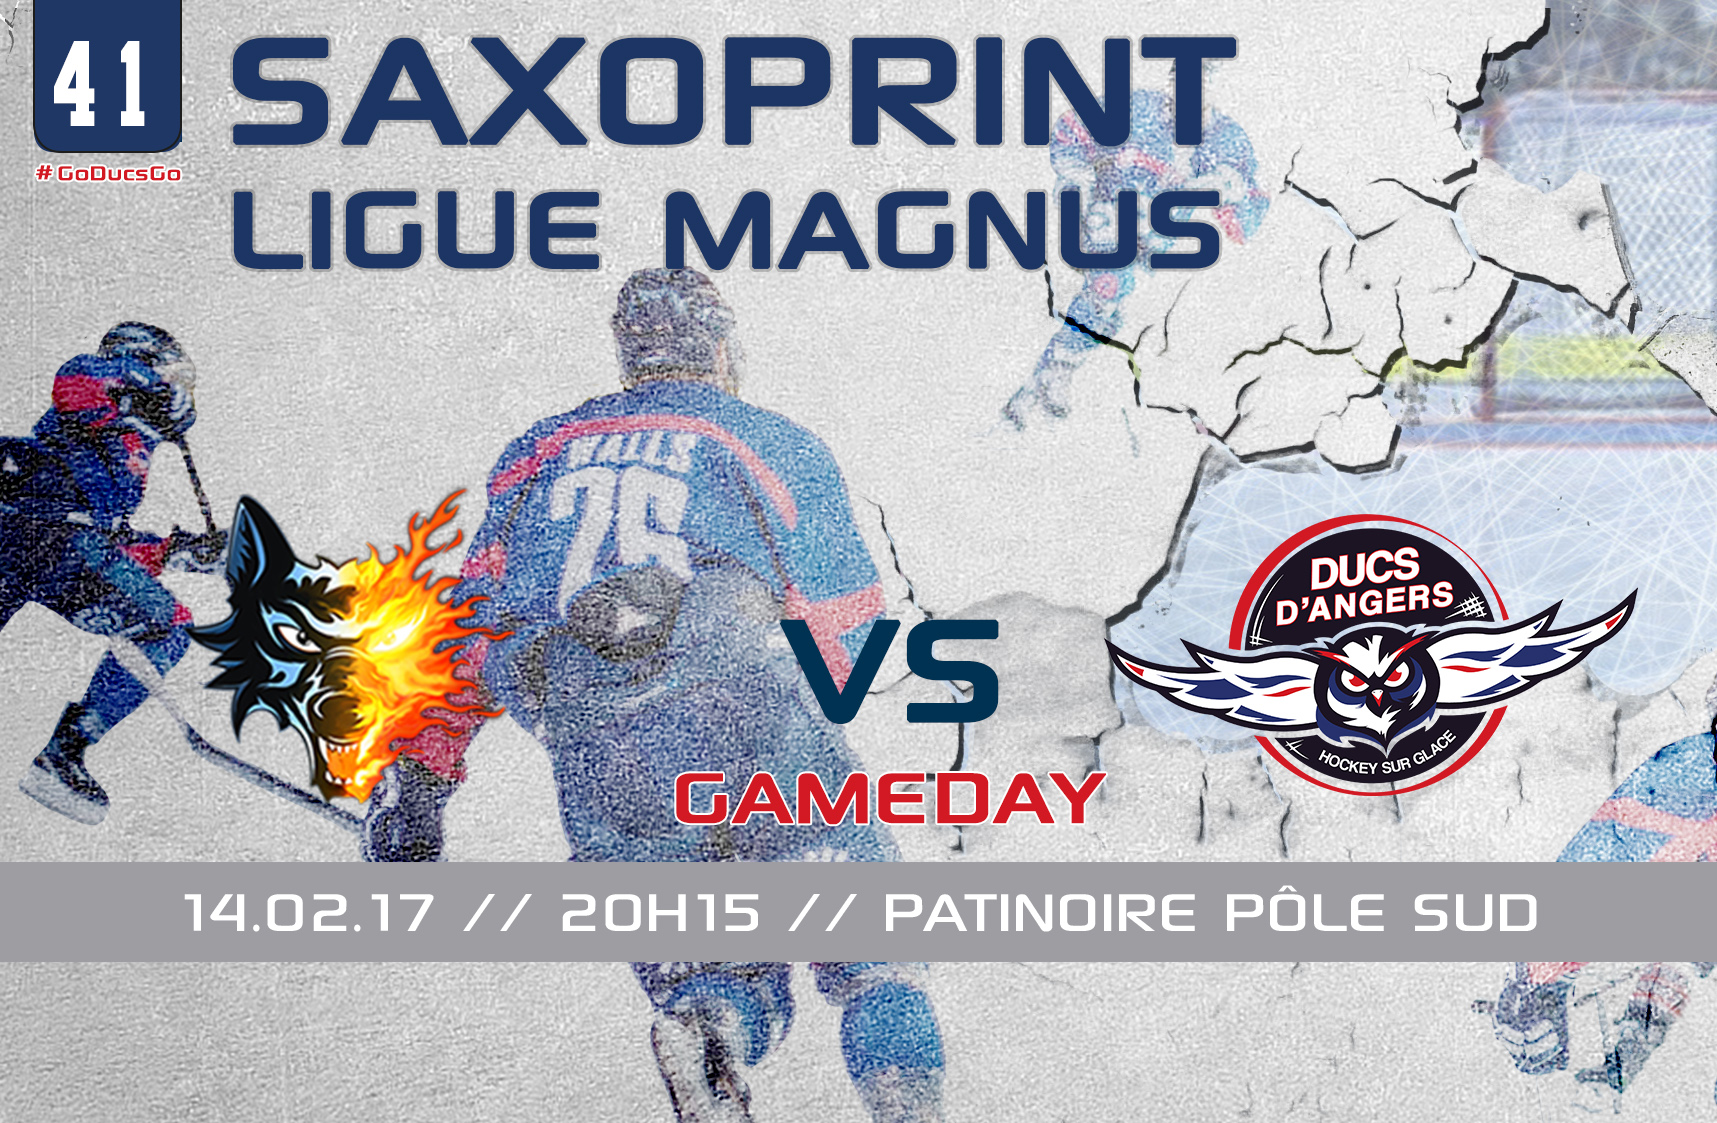 //GAME DAY// J-41 Saxoprint Ligue Magnus